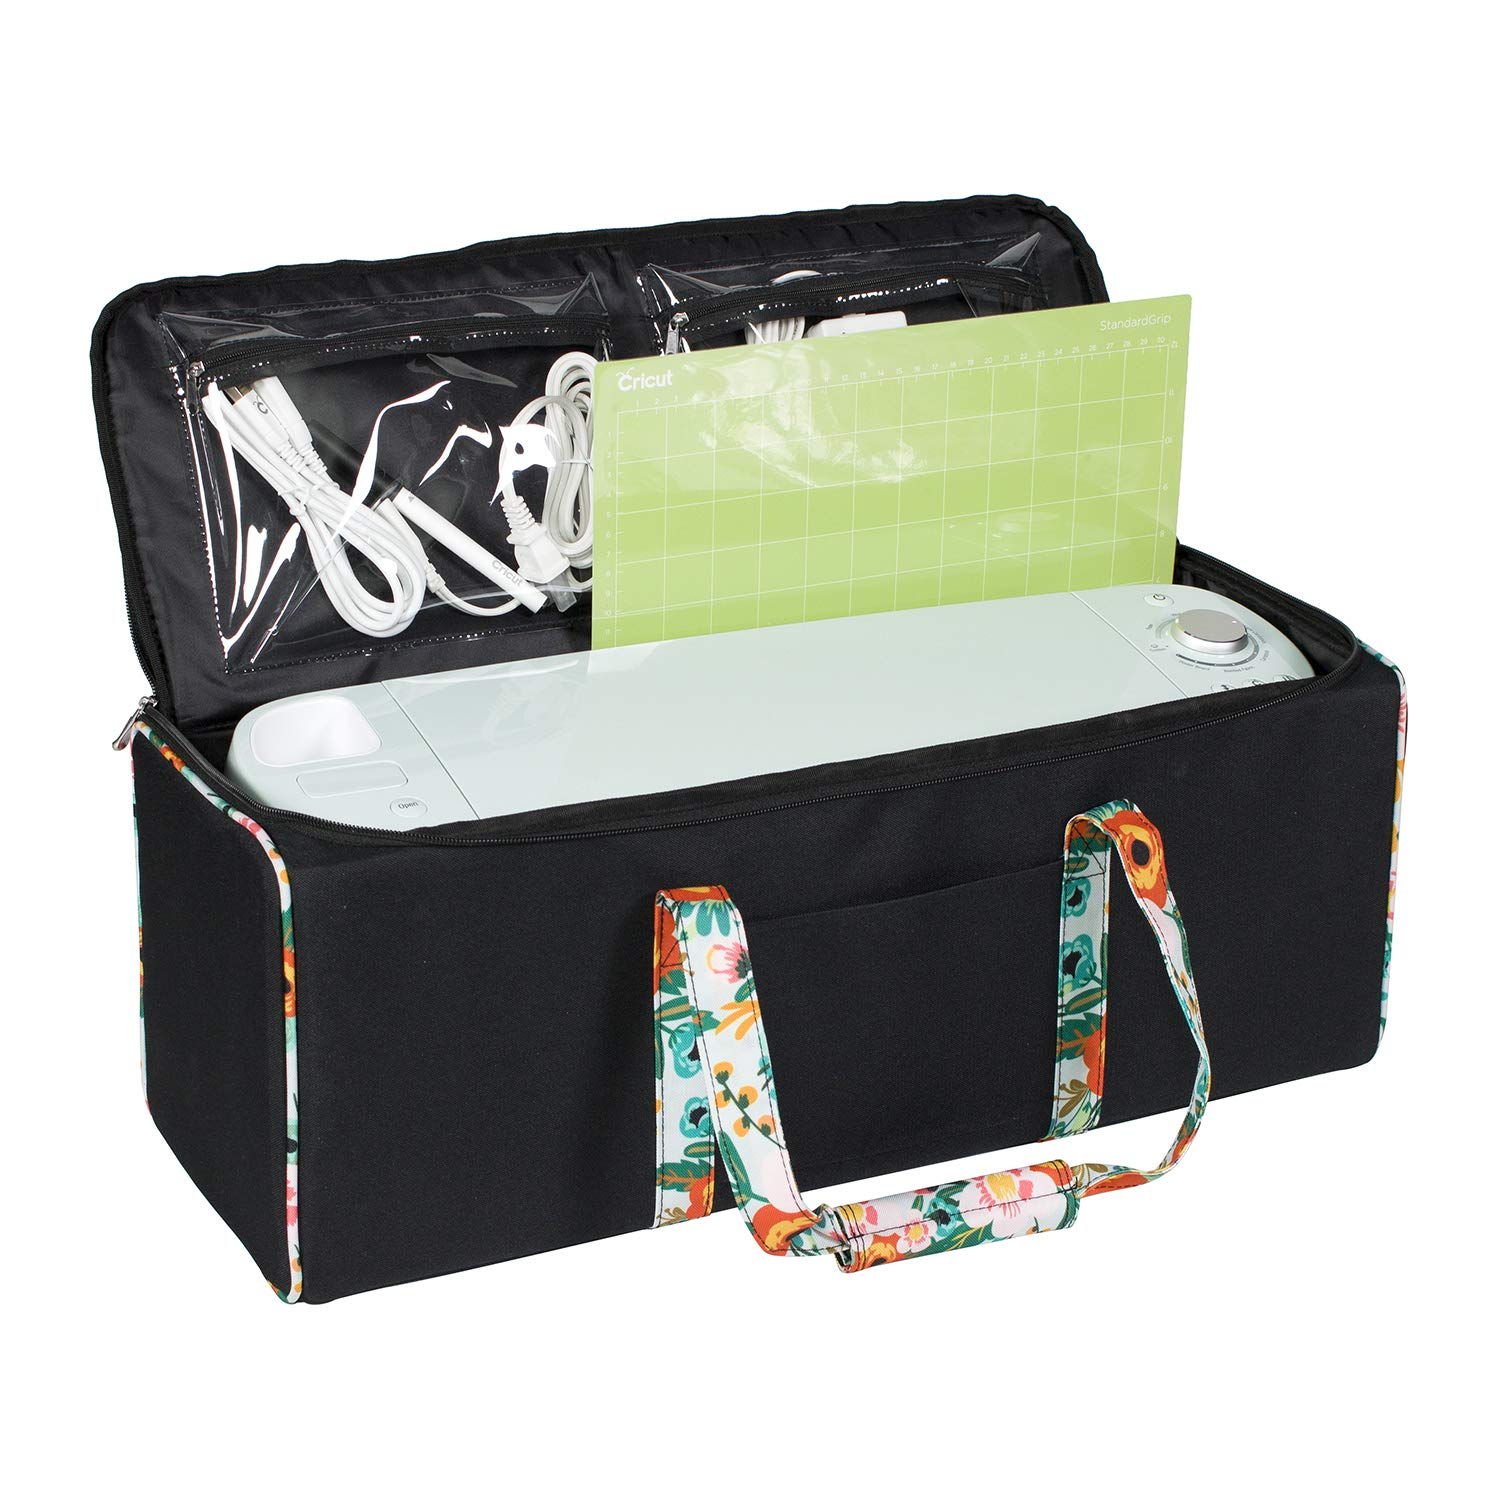 Everything Mary Collapsible Die-Cutting Machine Carrying Case - Craft E-Tote Bag Compatible with Cricut Explore Air & Cricut Maker – Cutting Machine Storage Bag for Vinyl, Tools, Pens, Accessories